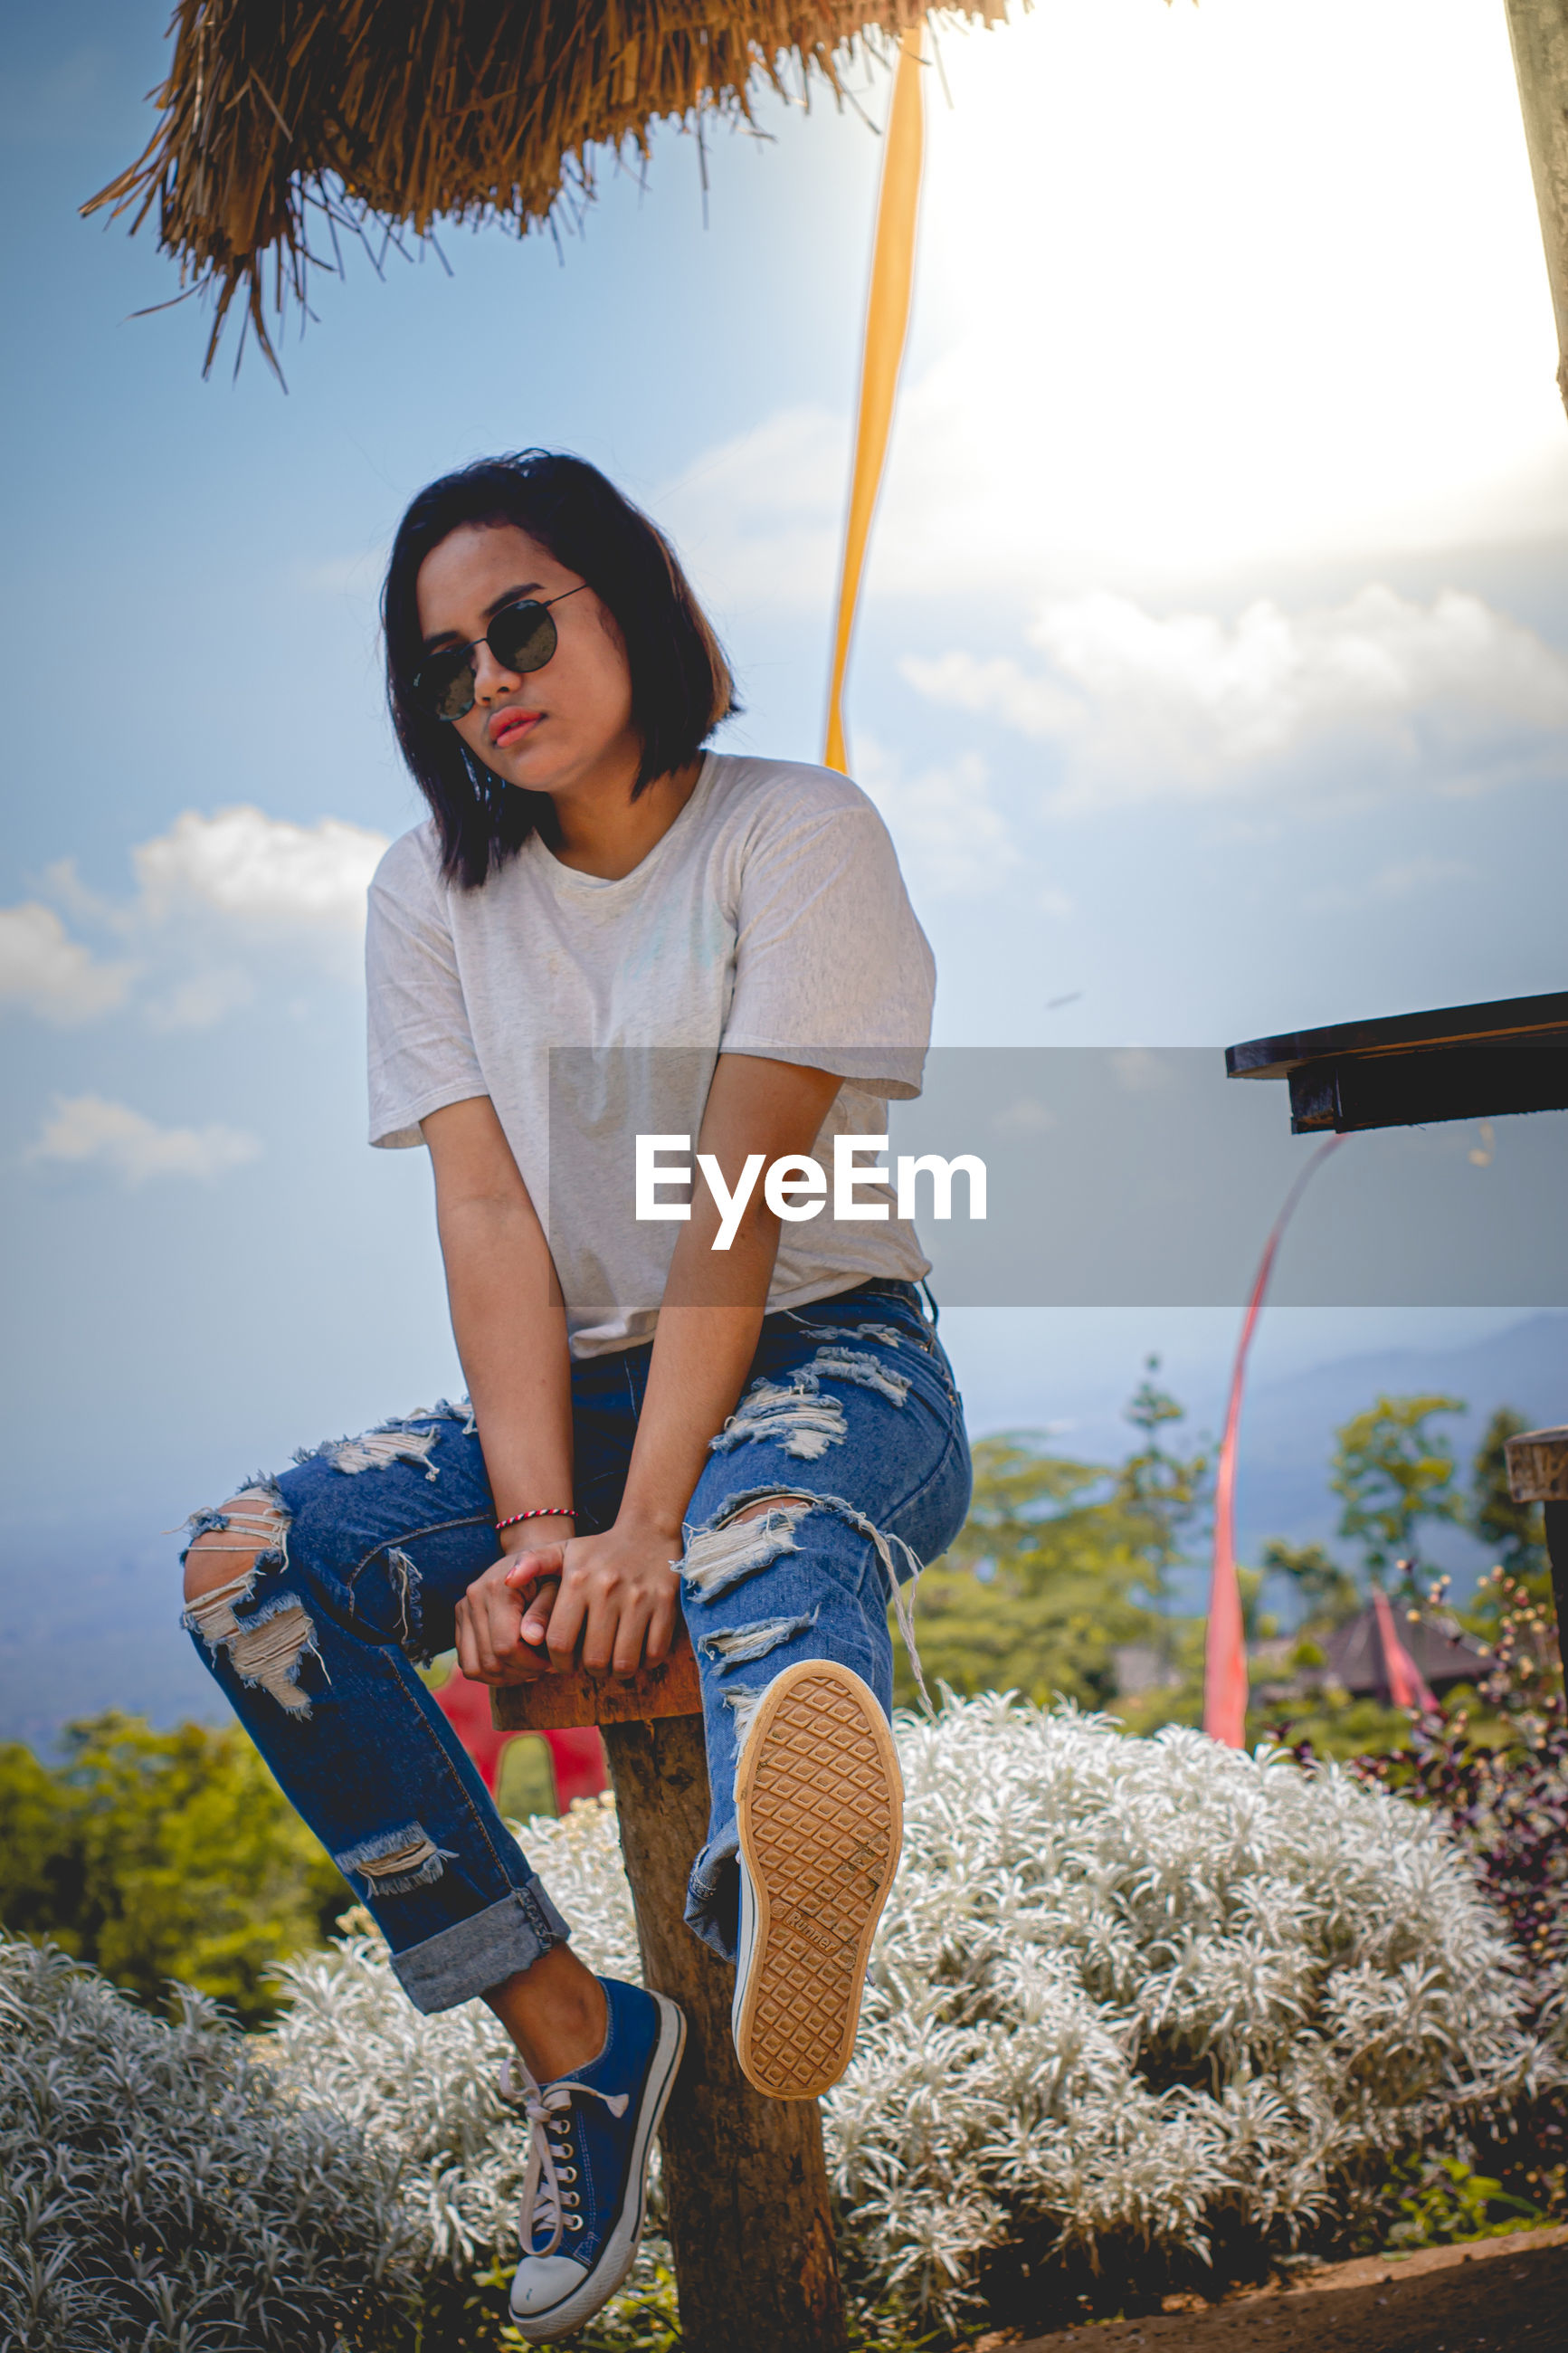 young woman Woman Woman Portrait Women Of EyeEm Spraying Full Length Standing Protective Glove Holding Front View Sky Cloud - Sky Casual Clothing Garden Hose Gardening Glove Gardening Equipment Watering Rake Gardening Florist Petunia Community Garden Sprinkler